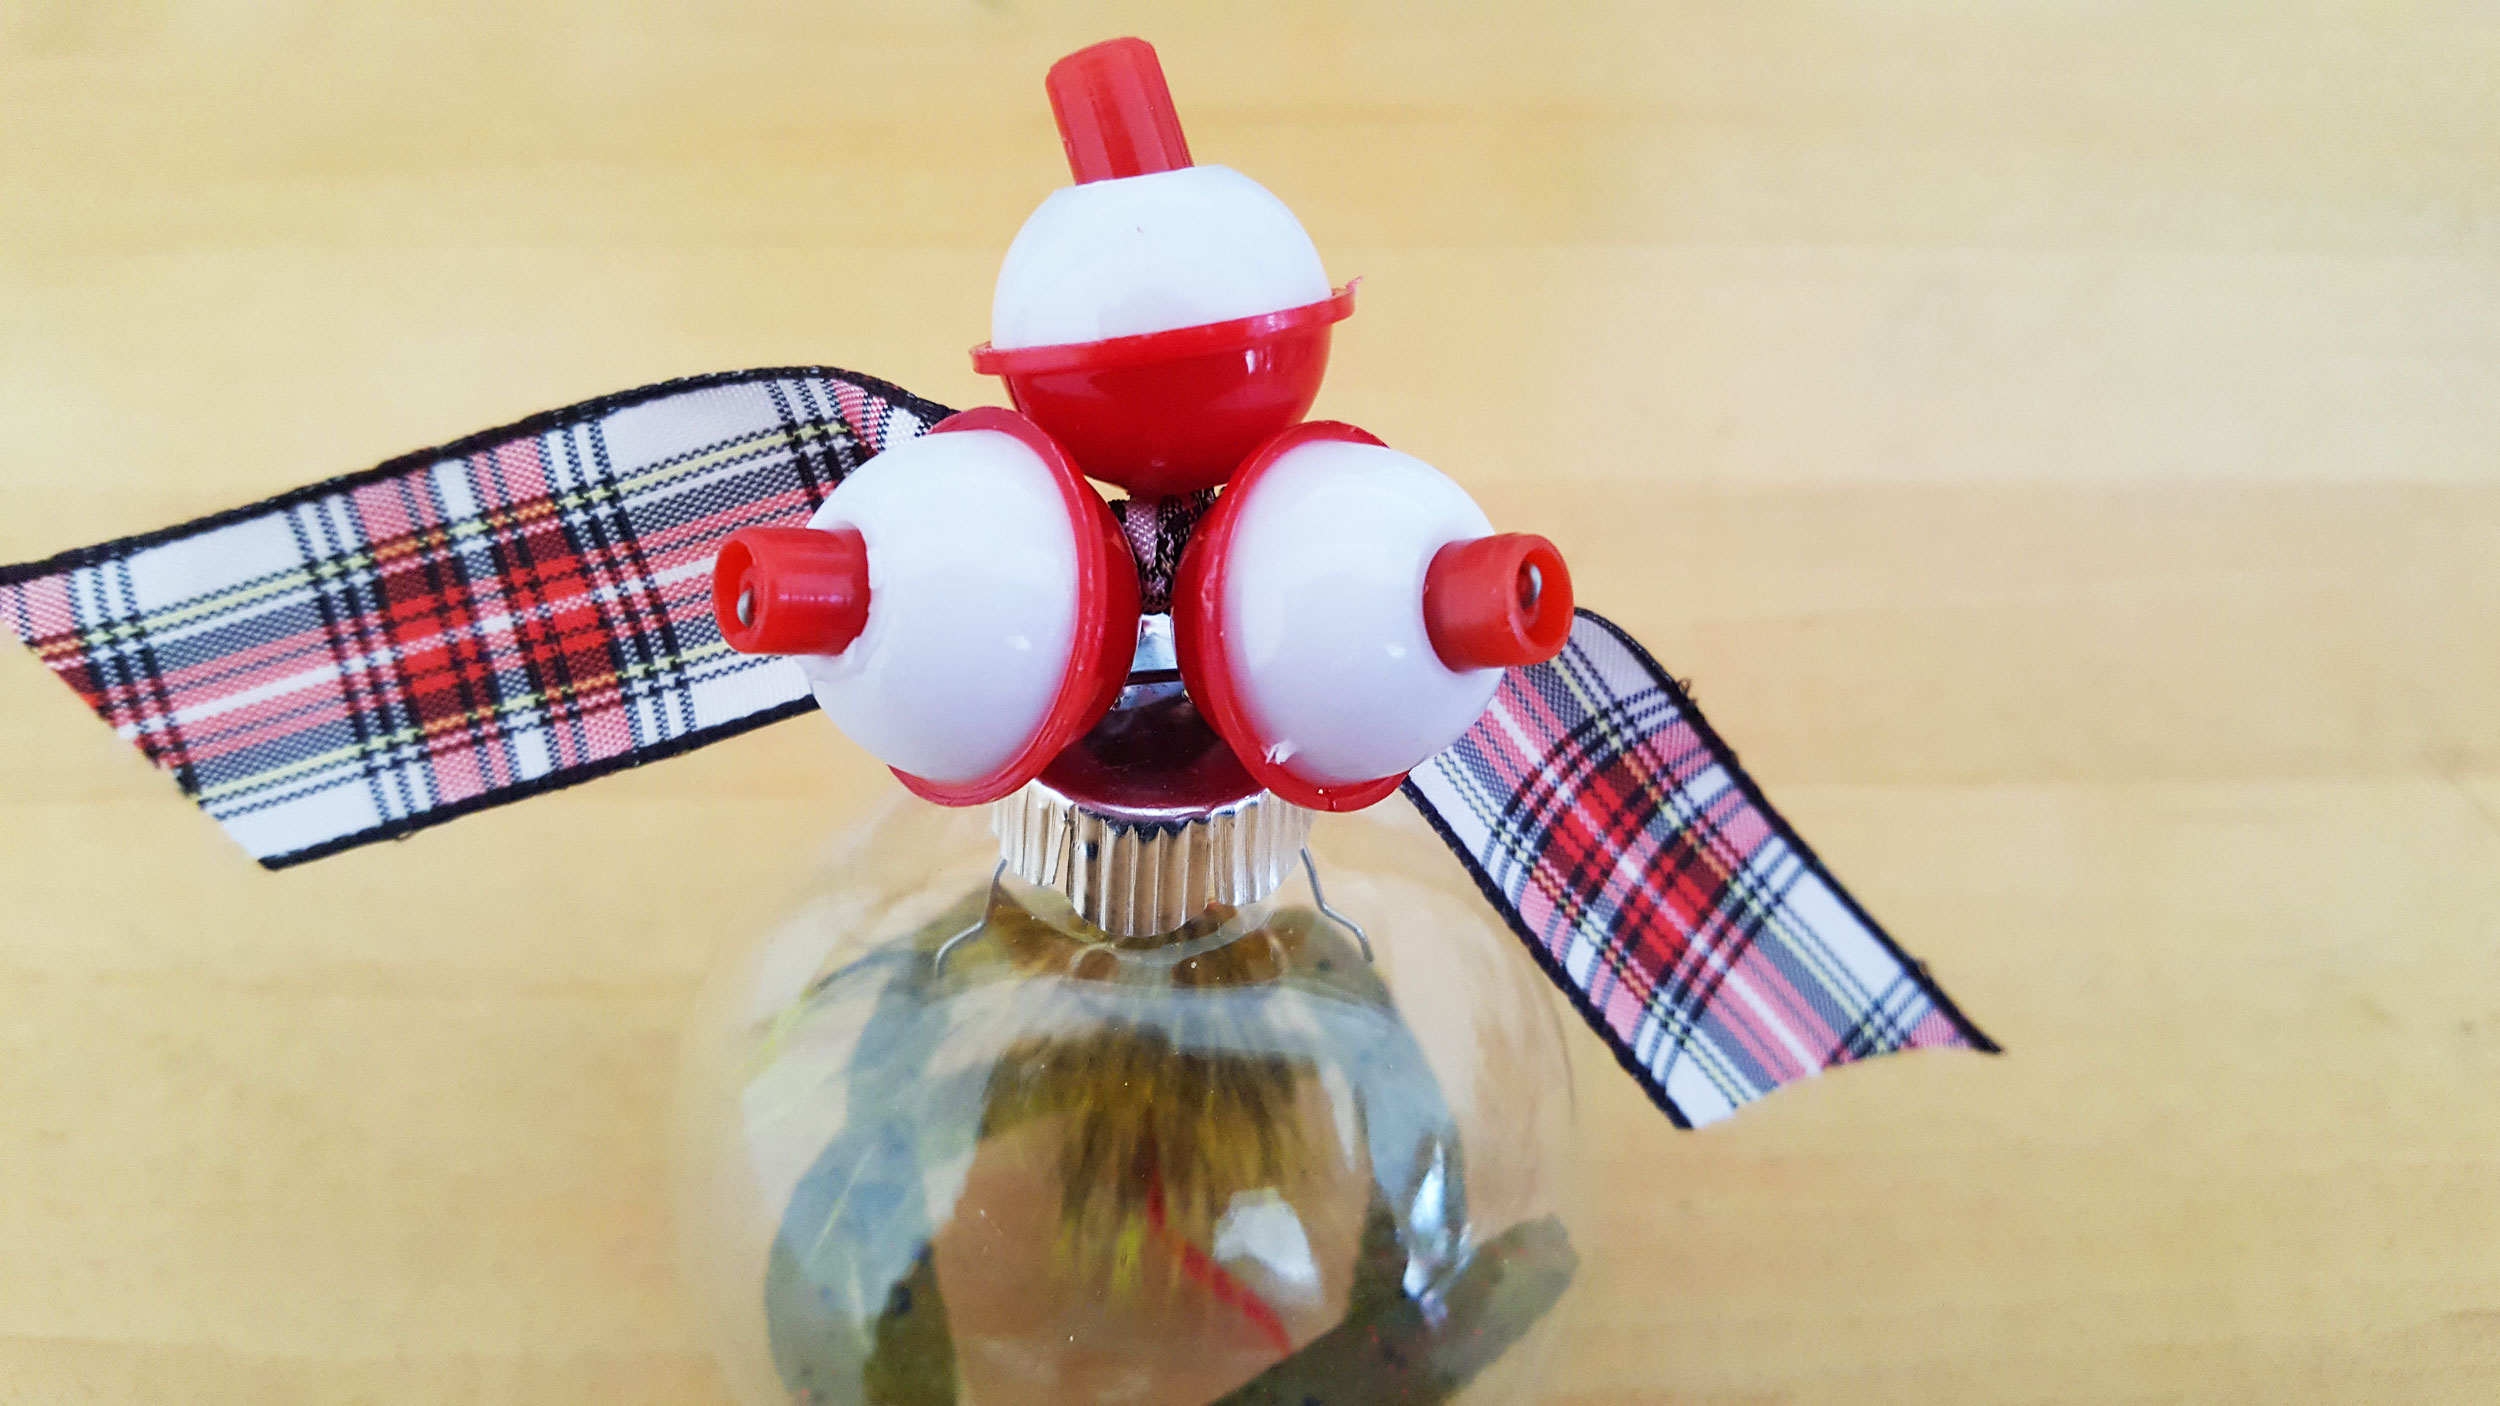 Fishing Ornament topped with Bobber | OrnamentShop.com